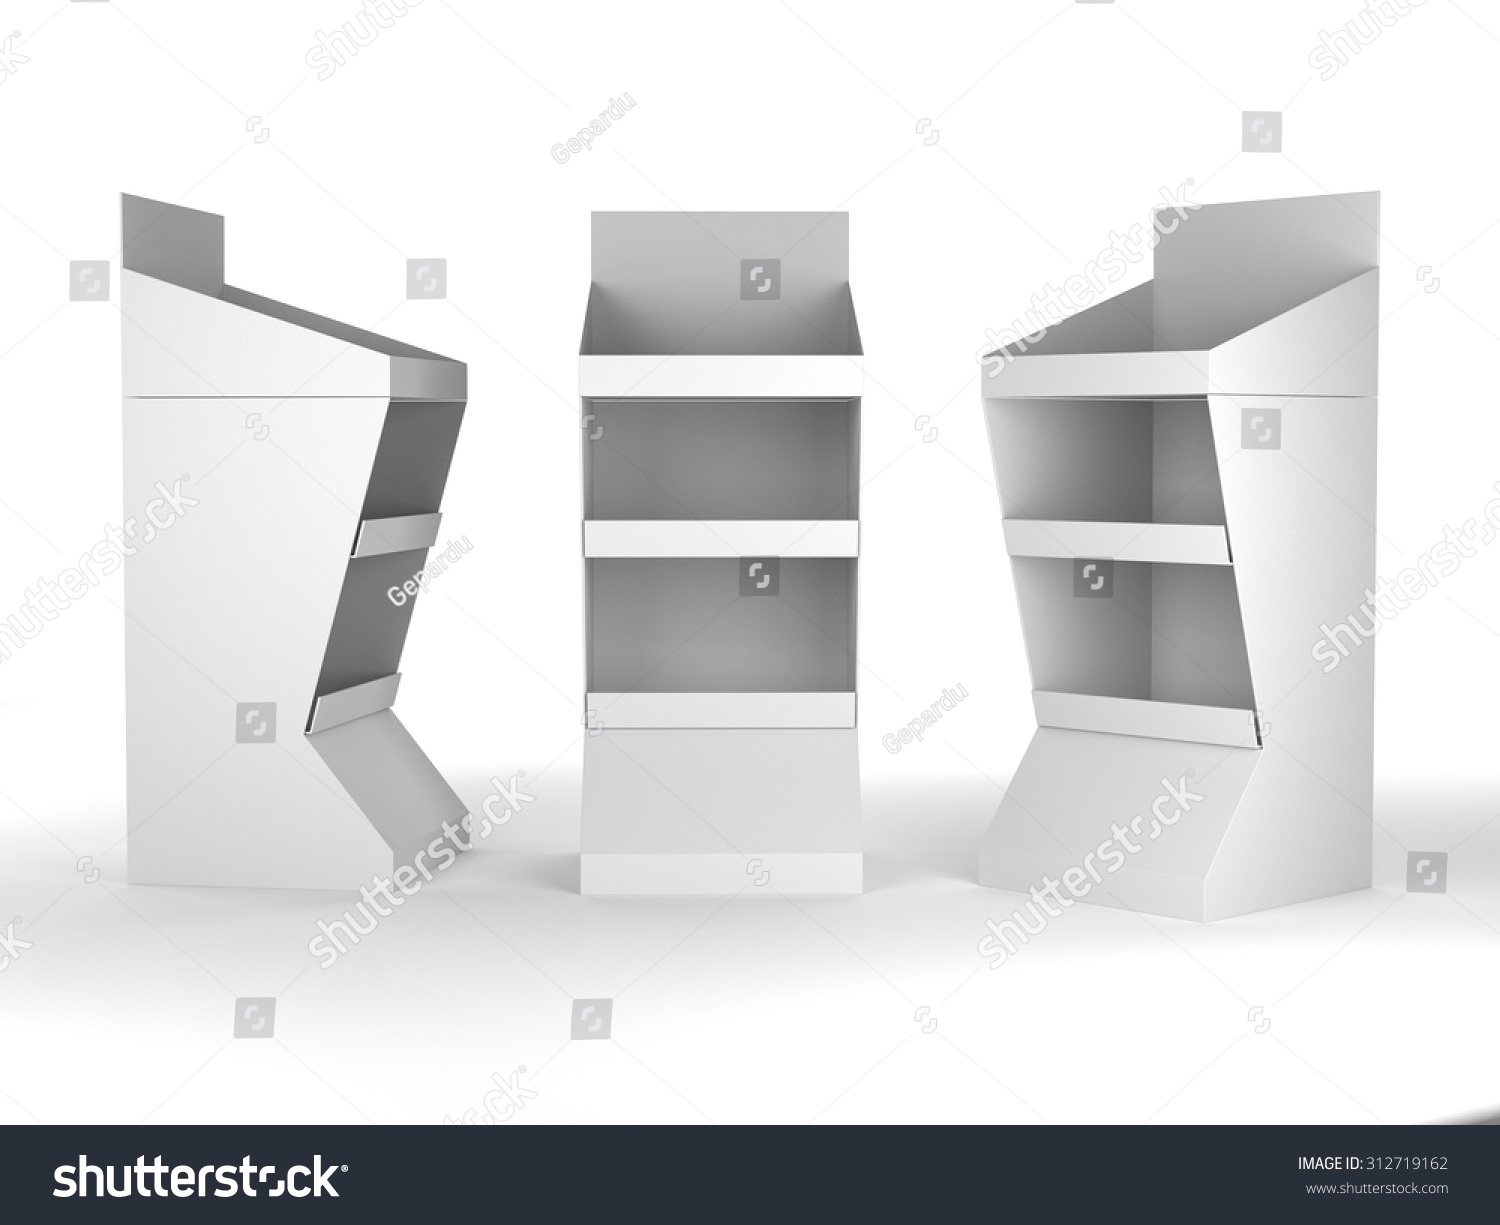 Exhibition Stand Mockup Free Download : Display stand mockup template on white stock illustration